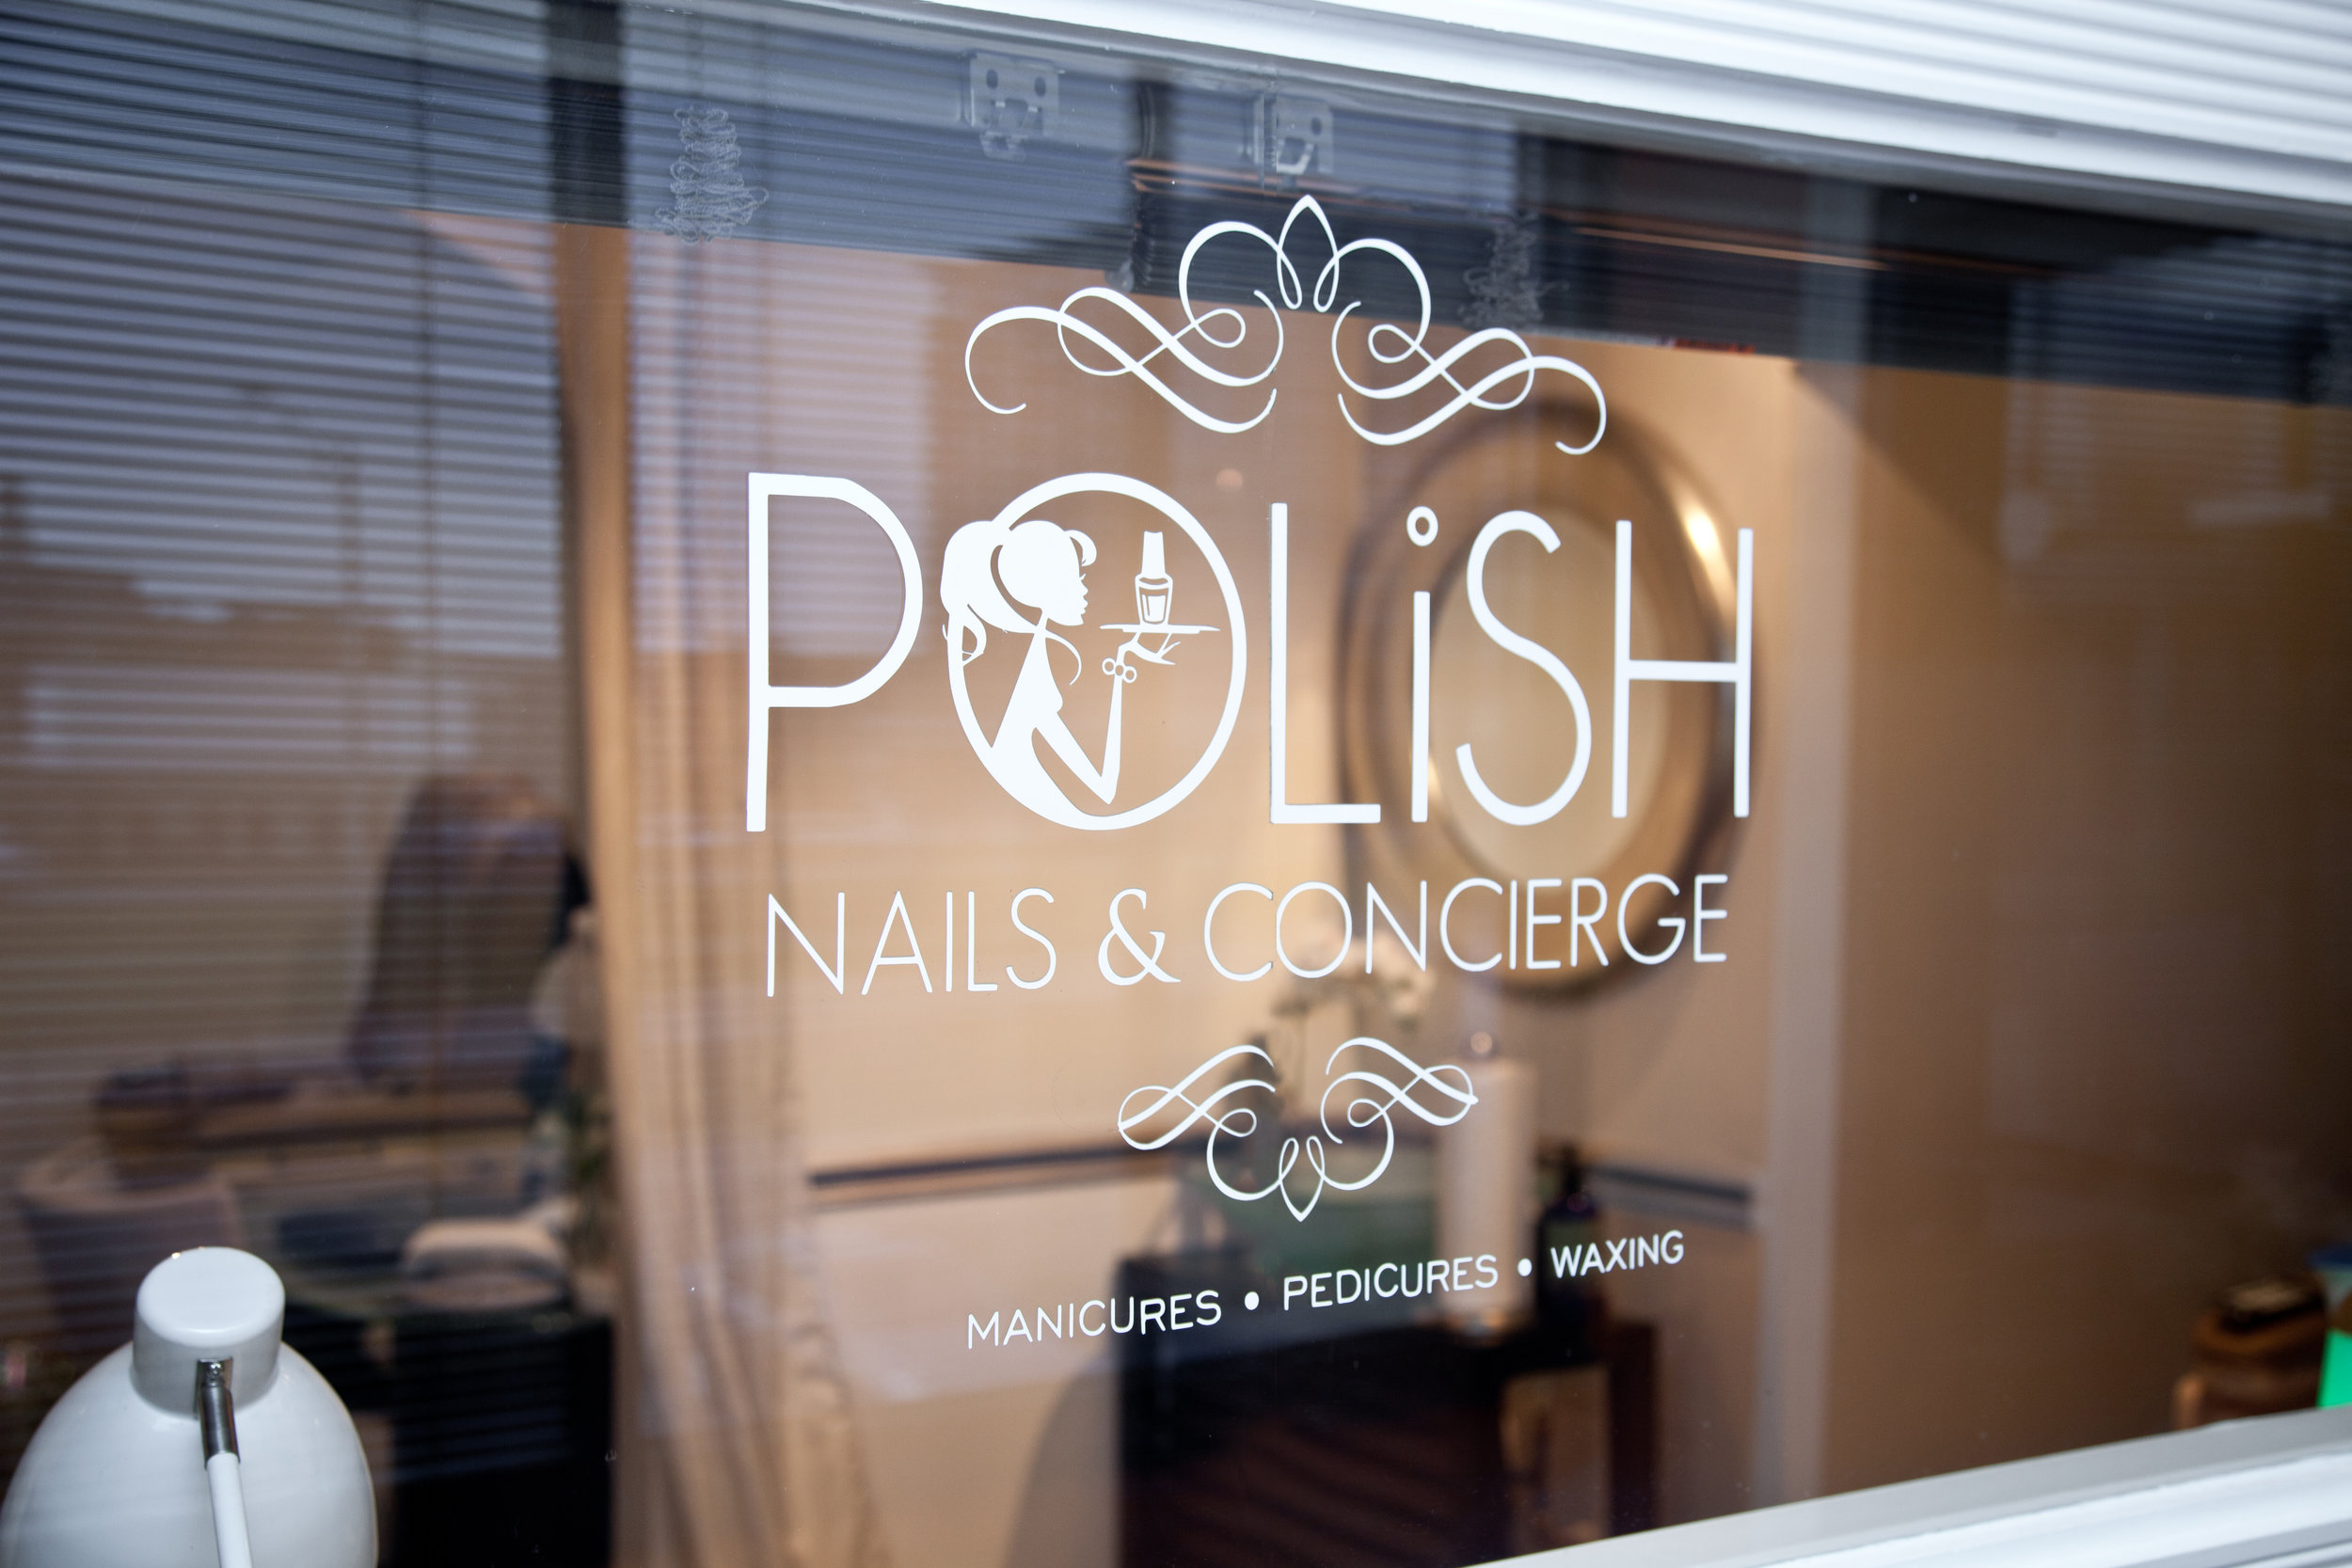 Polish Nails and Concierge Studio Window